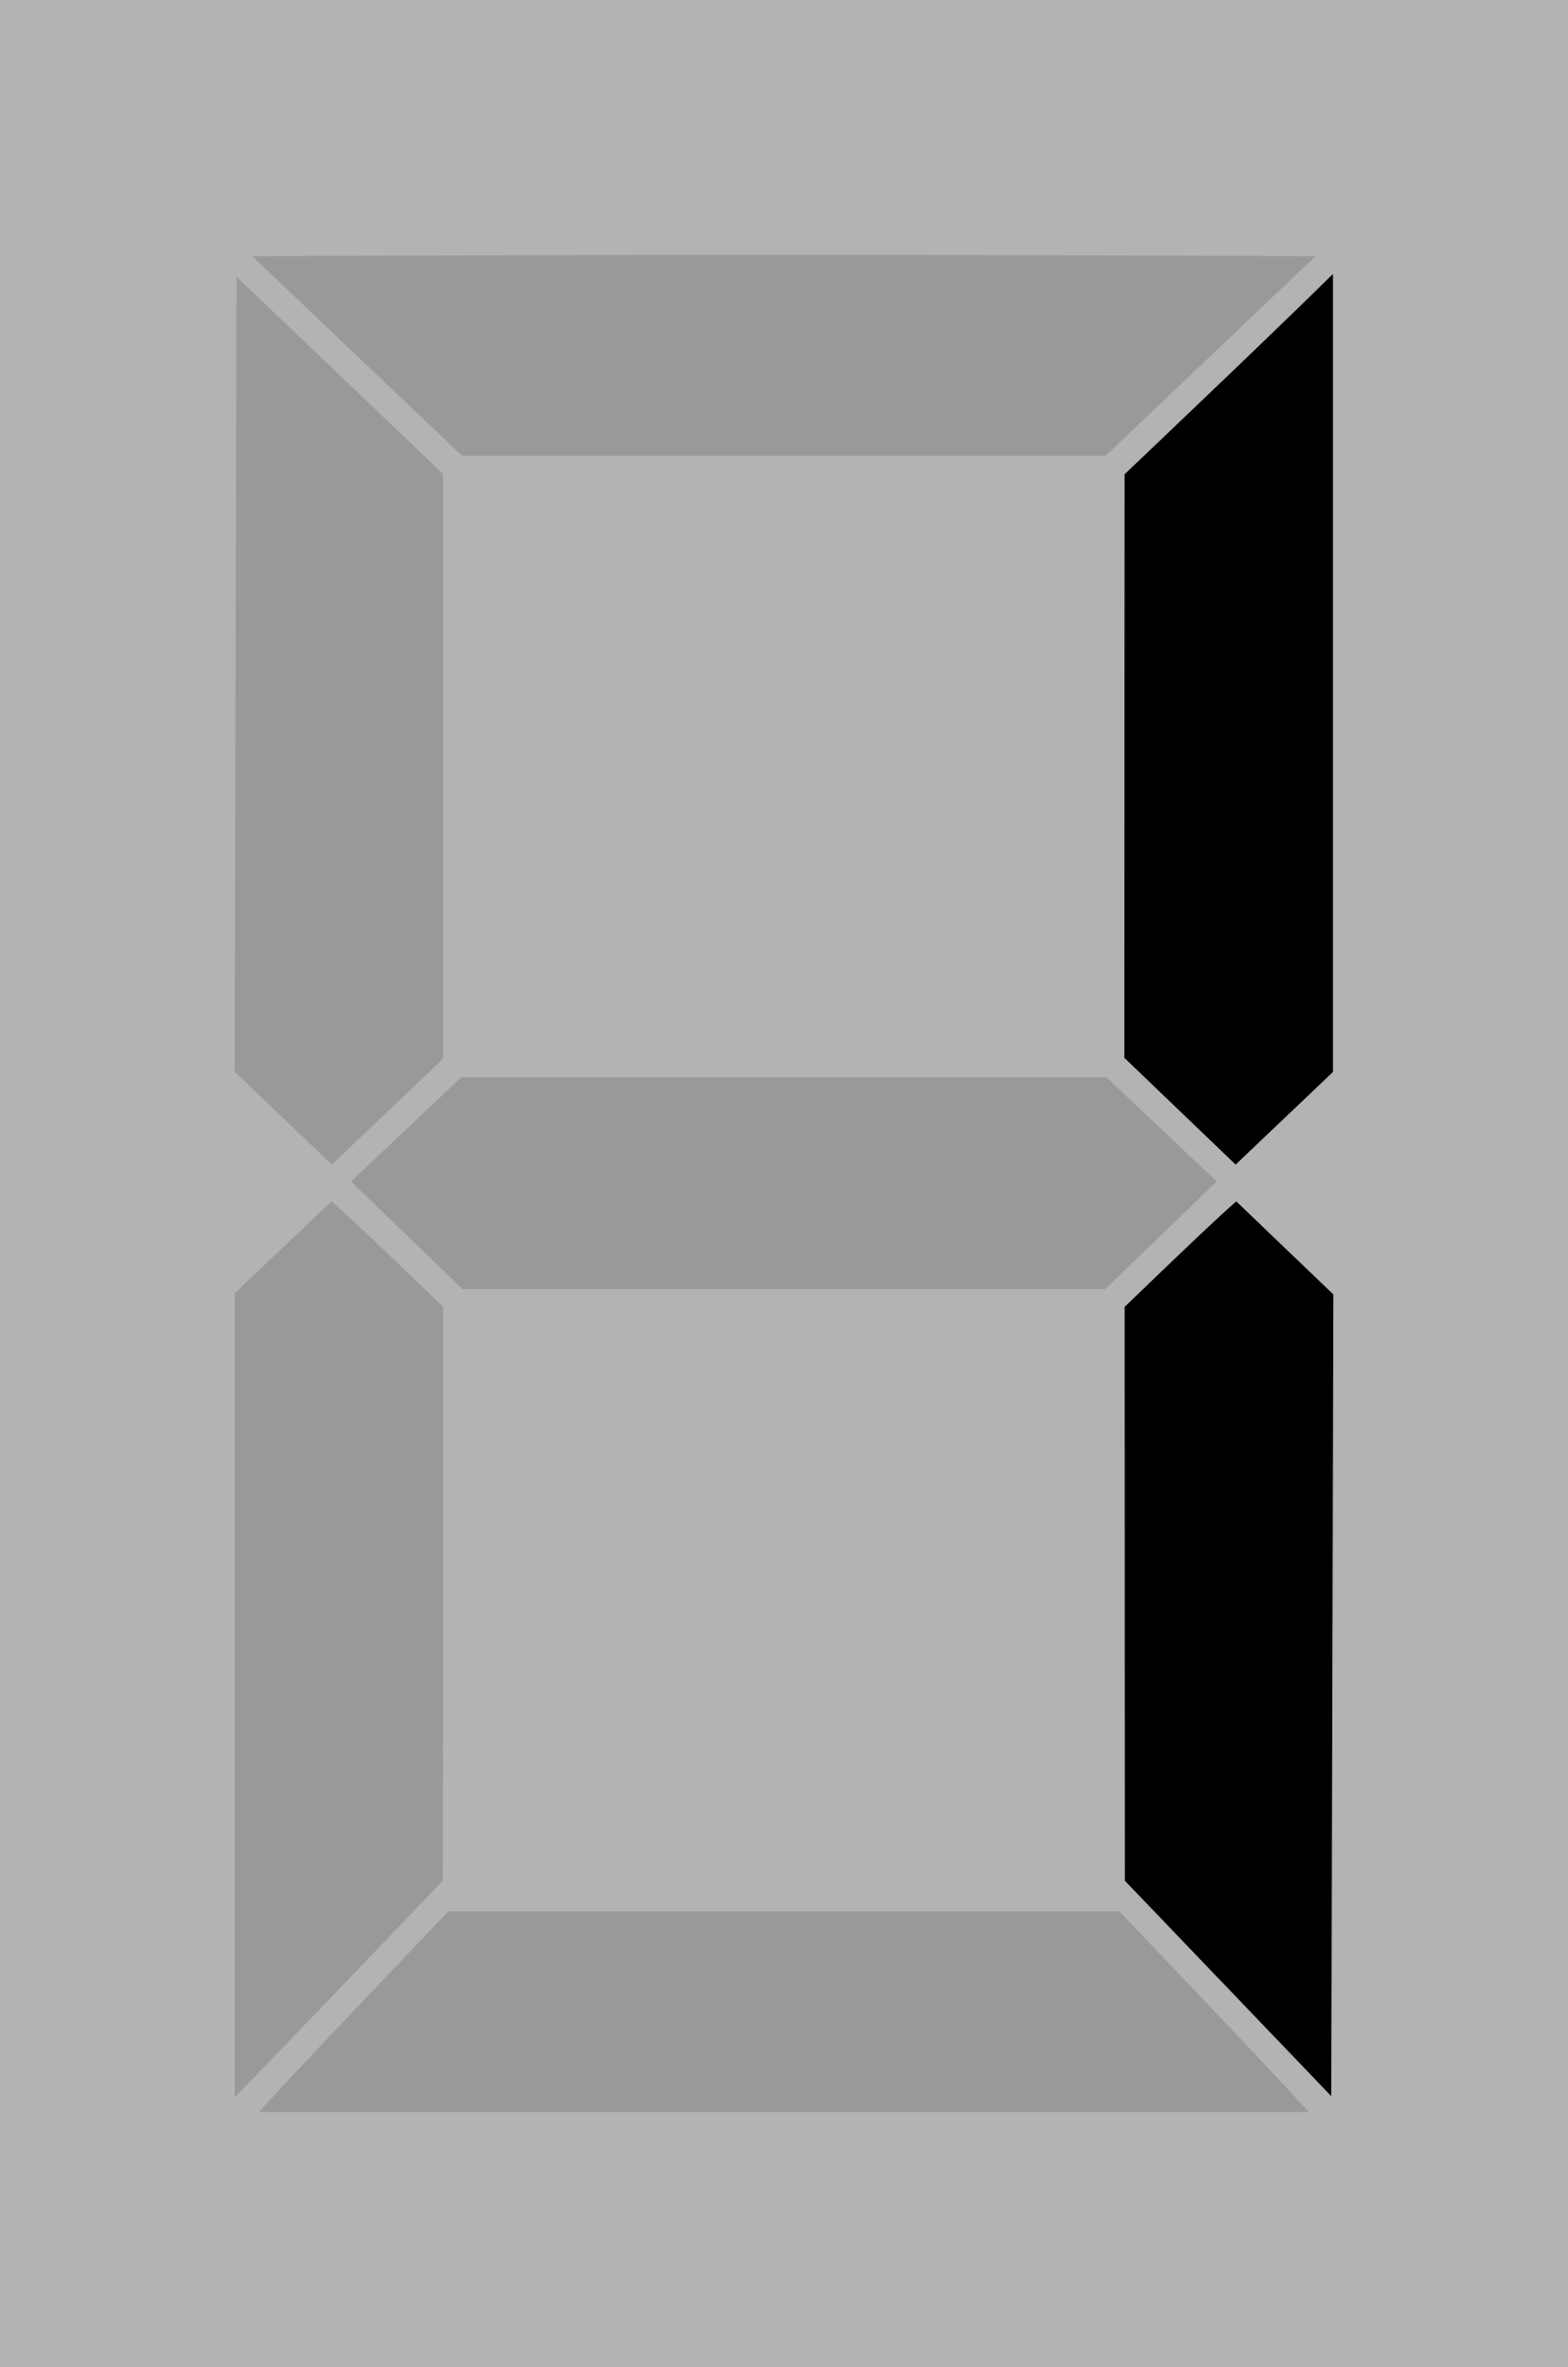 Seven segment display gray 1 by alex8664